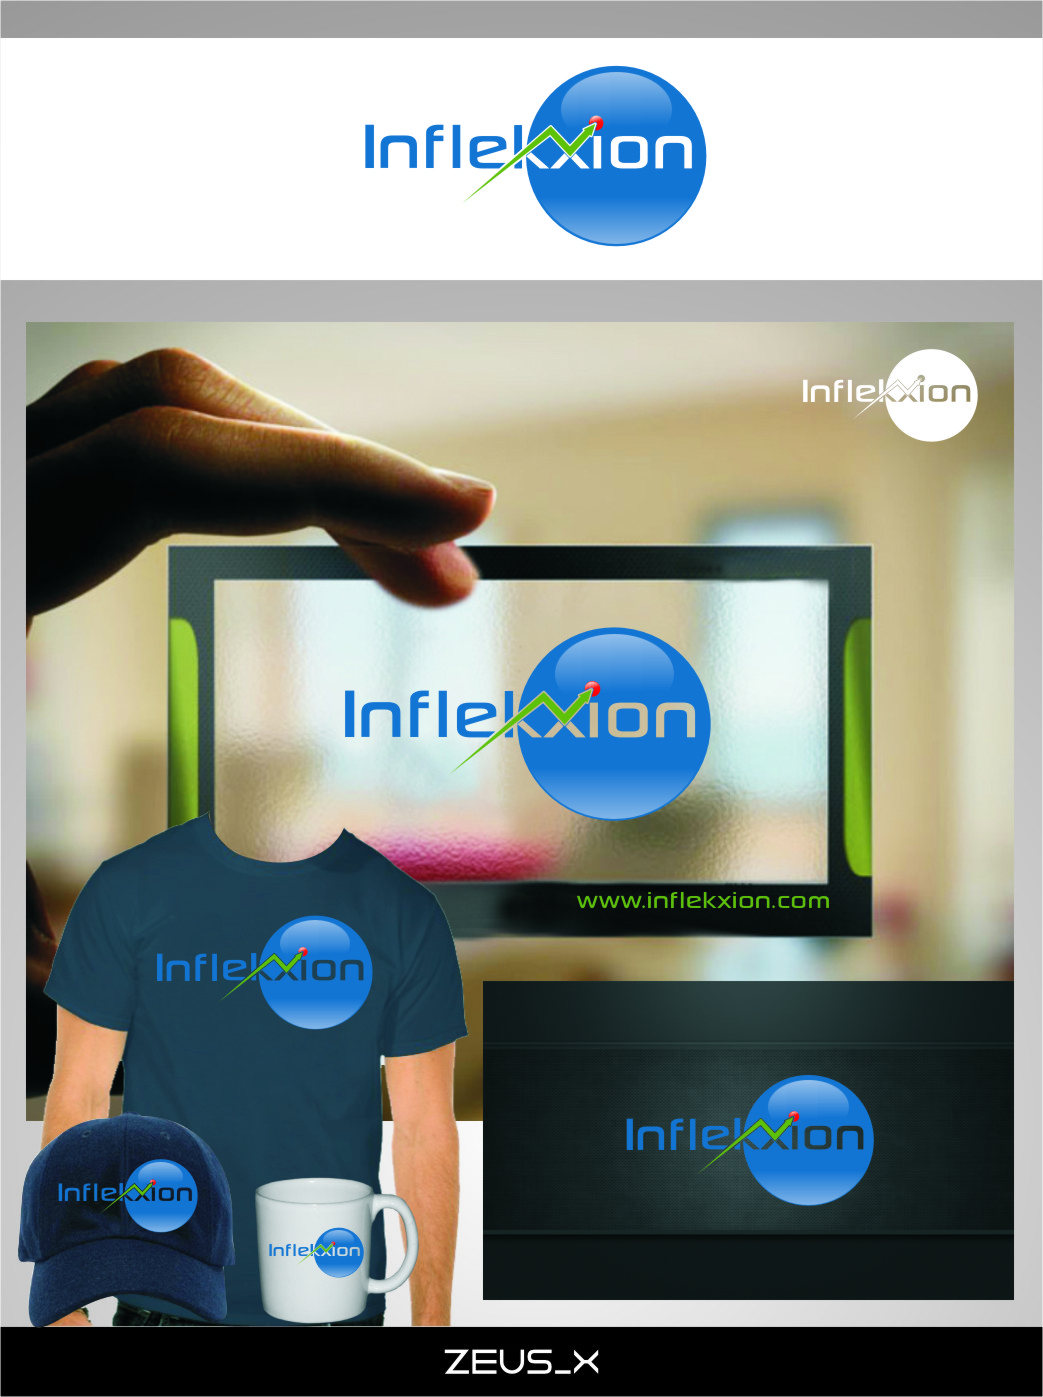 Logo Design by RasYa Muhammad Athaya - Entry No. 123 in the Logo Design Contest Professional Logo Design for Inflekxion.